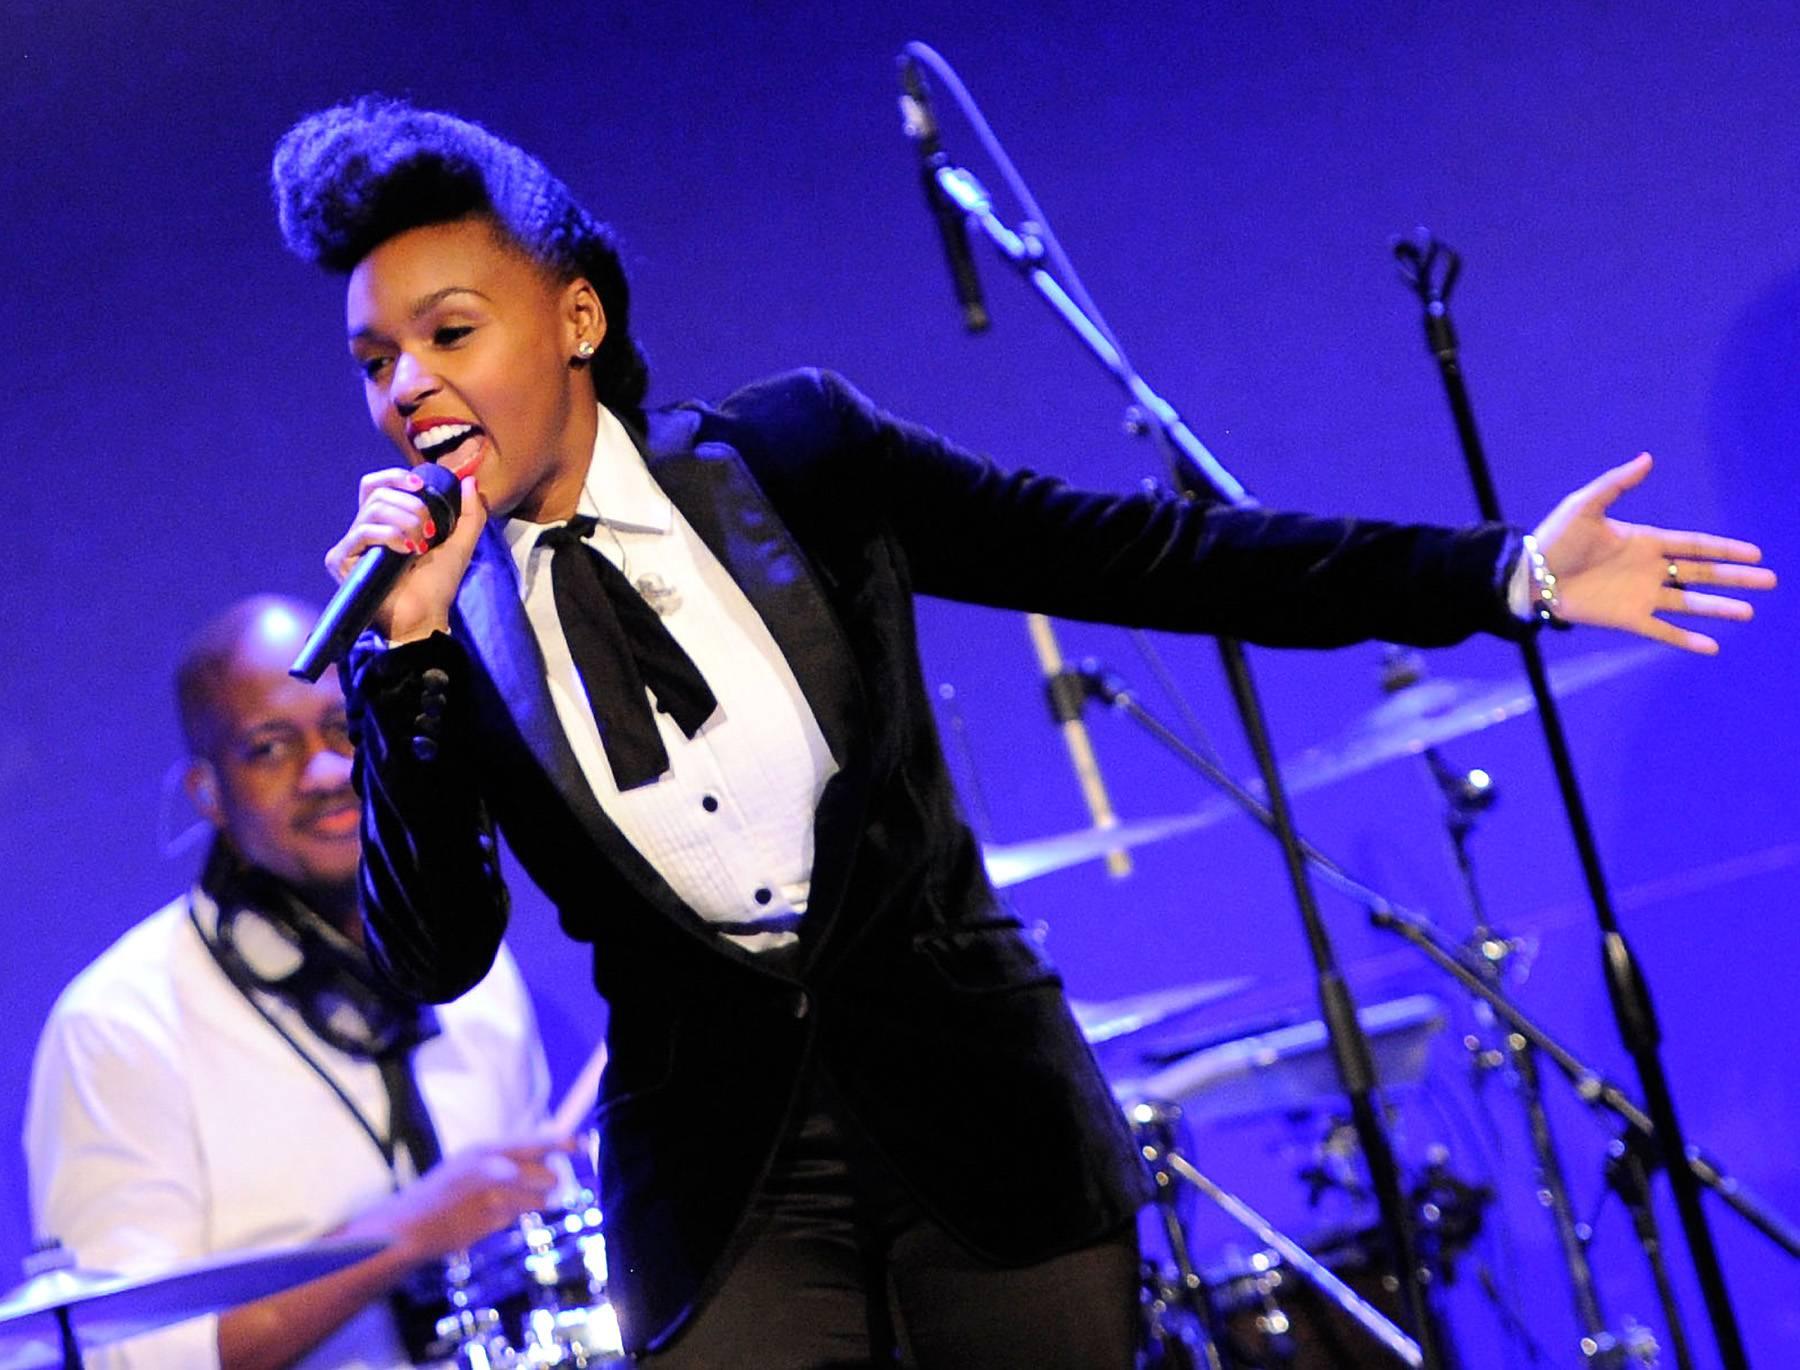 Electrifying! - The Electric Lady, Janelle Monae, is going to shock the world tonight on 106 at 6P/5C!  (Photo: Jemal Countess/Getty Images)